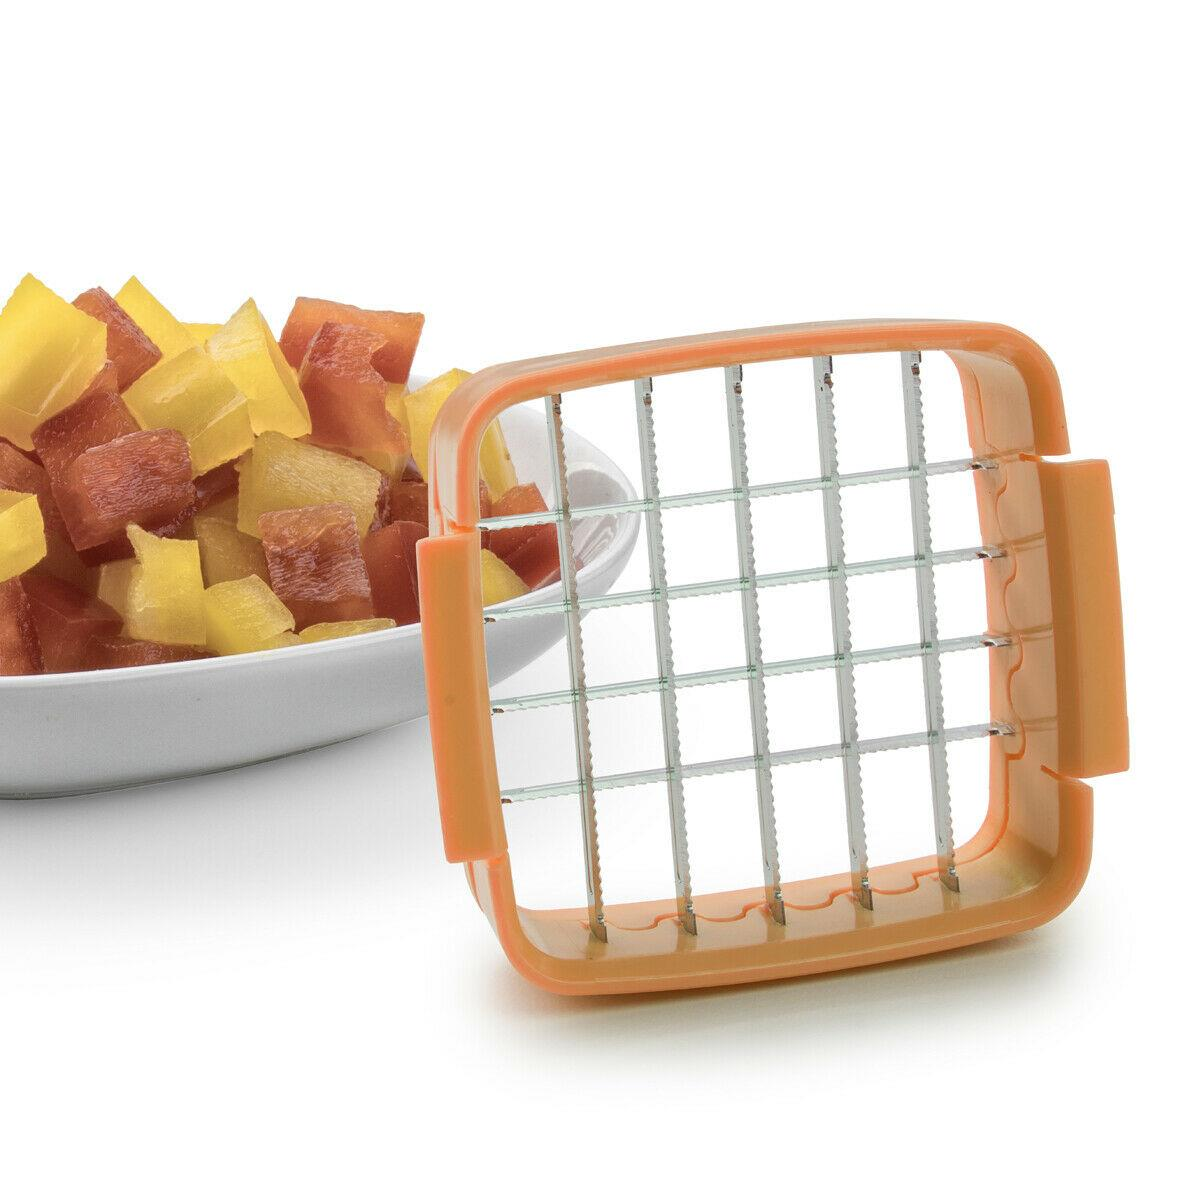 JML-Nicer-Dicer-Quick-5-in-1-Hand-Held-Chopping-Slicing-and-Dicing-Machine miniatuur 13